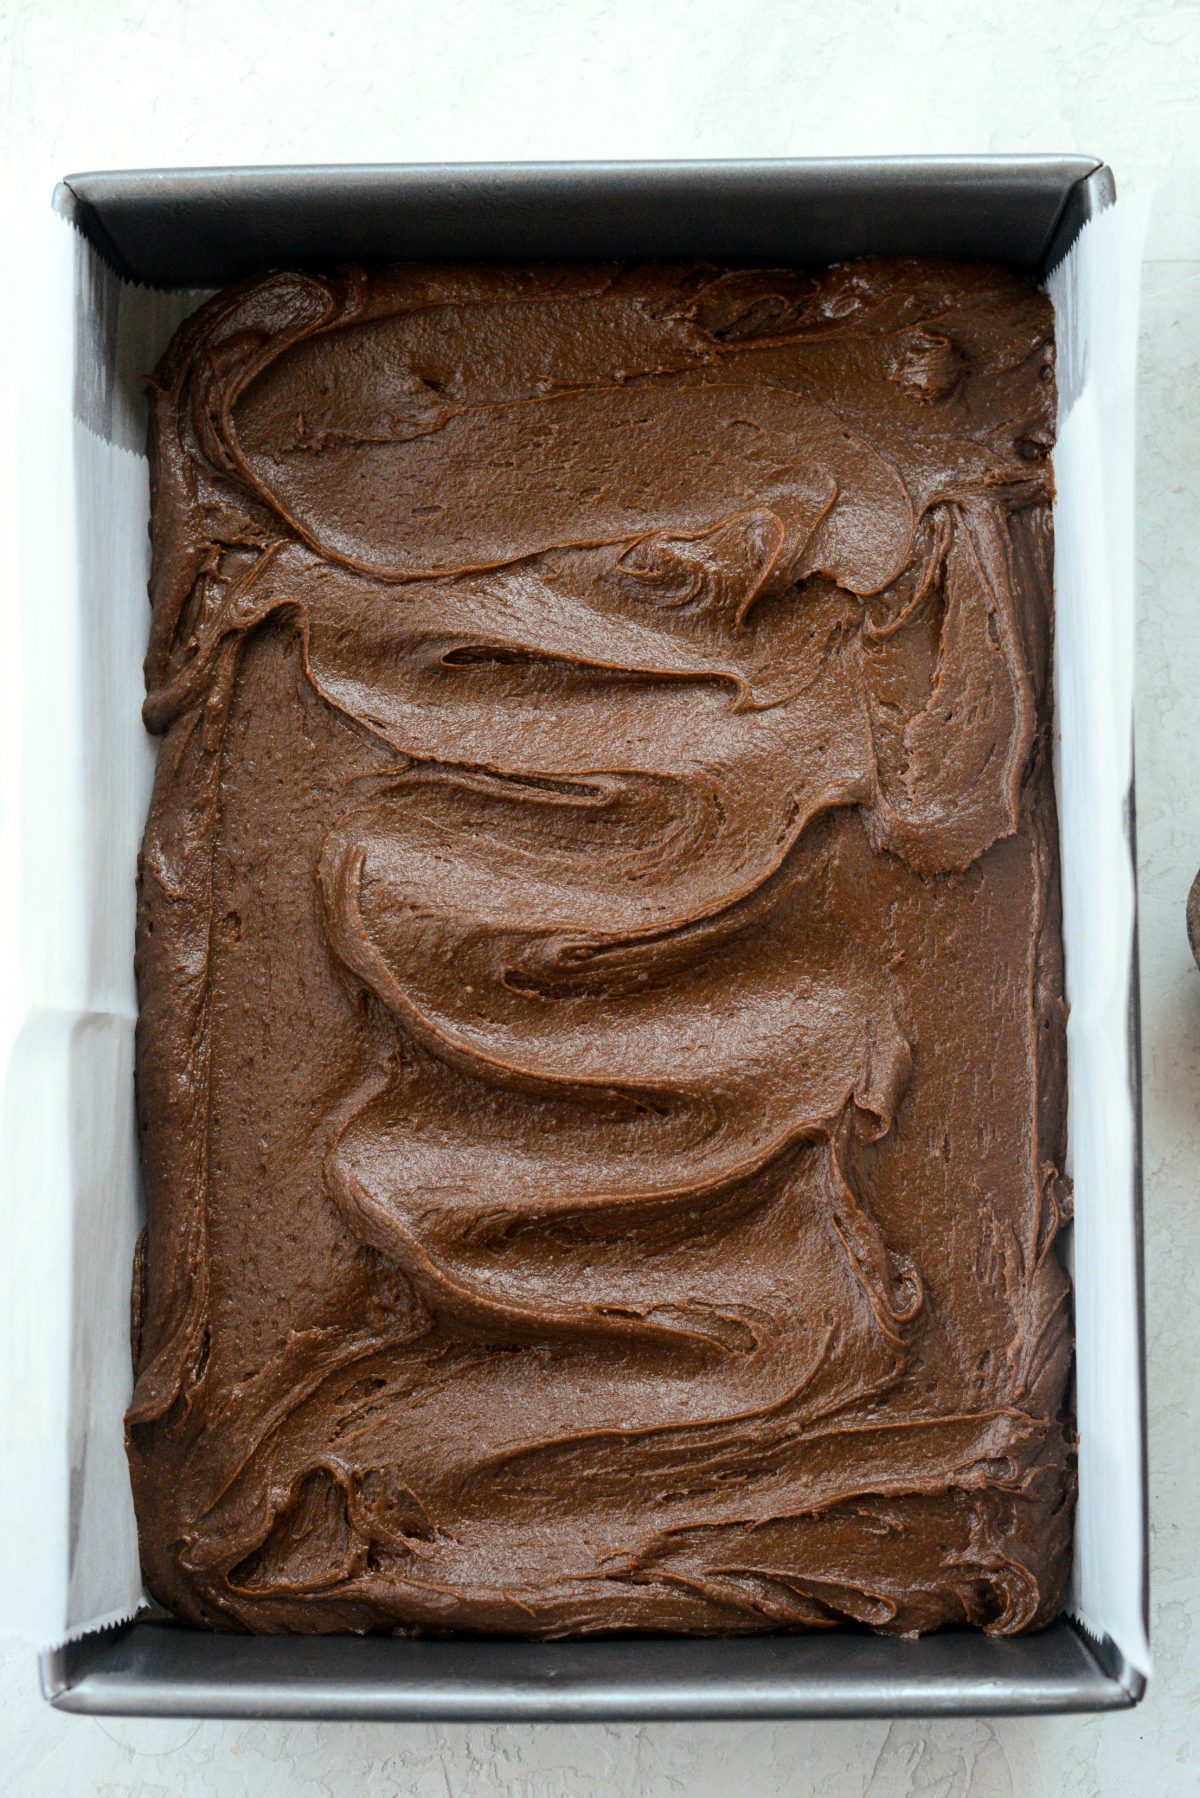 Homemade Chocolate Brownies l SimplyScratch.com #homemade #chocolate #brownies #fromscratch #easy